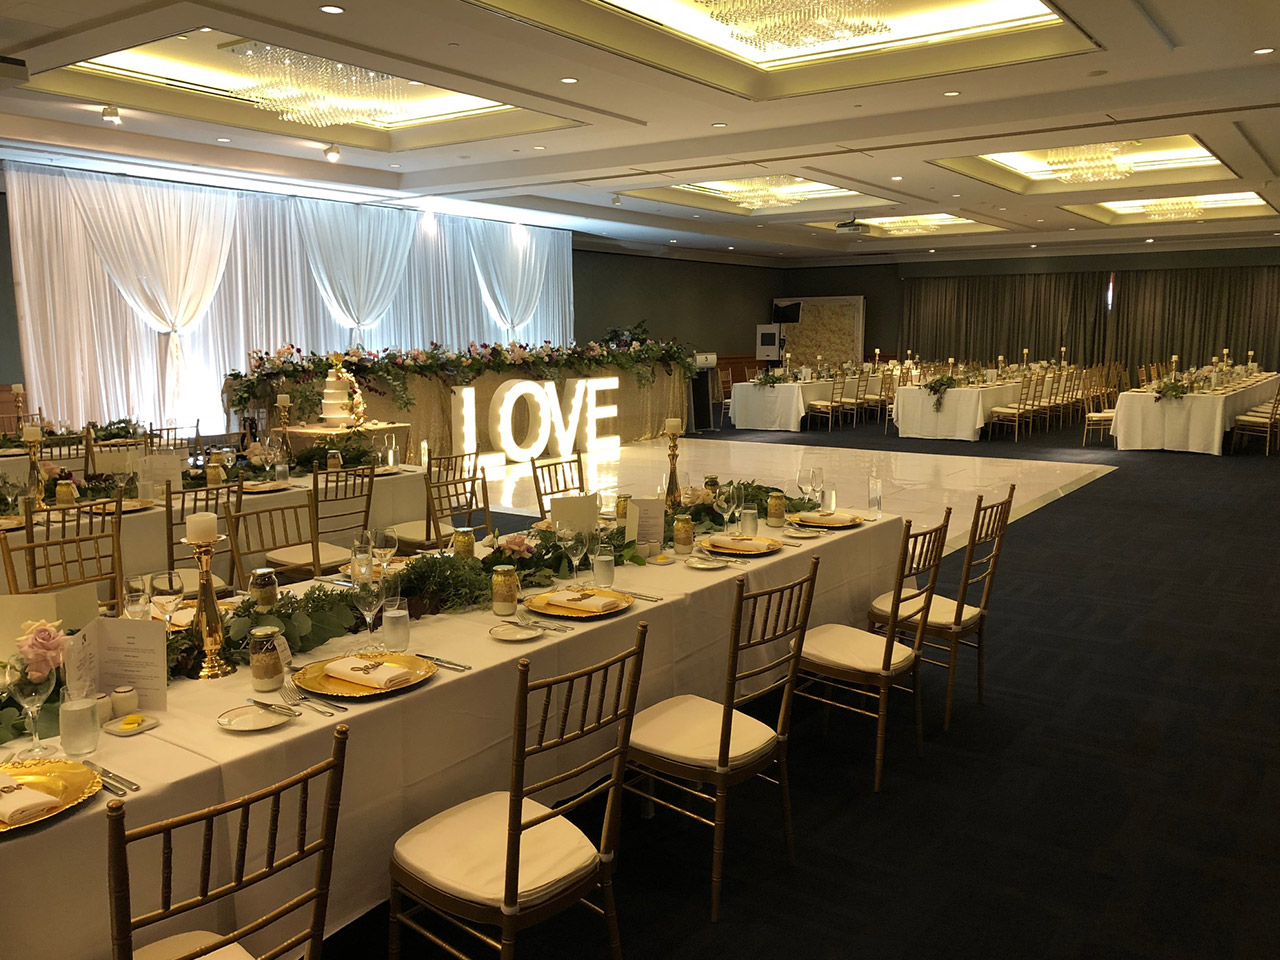 Long Tables and Chairs With Stage Back Drapping And LOVE Standee Inside The Function Room